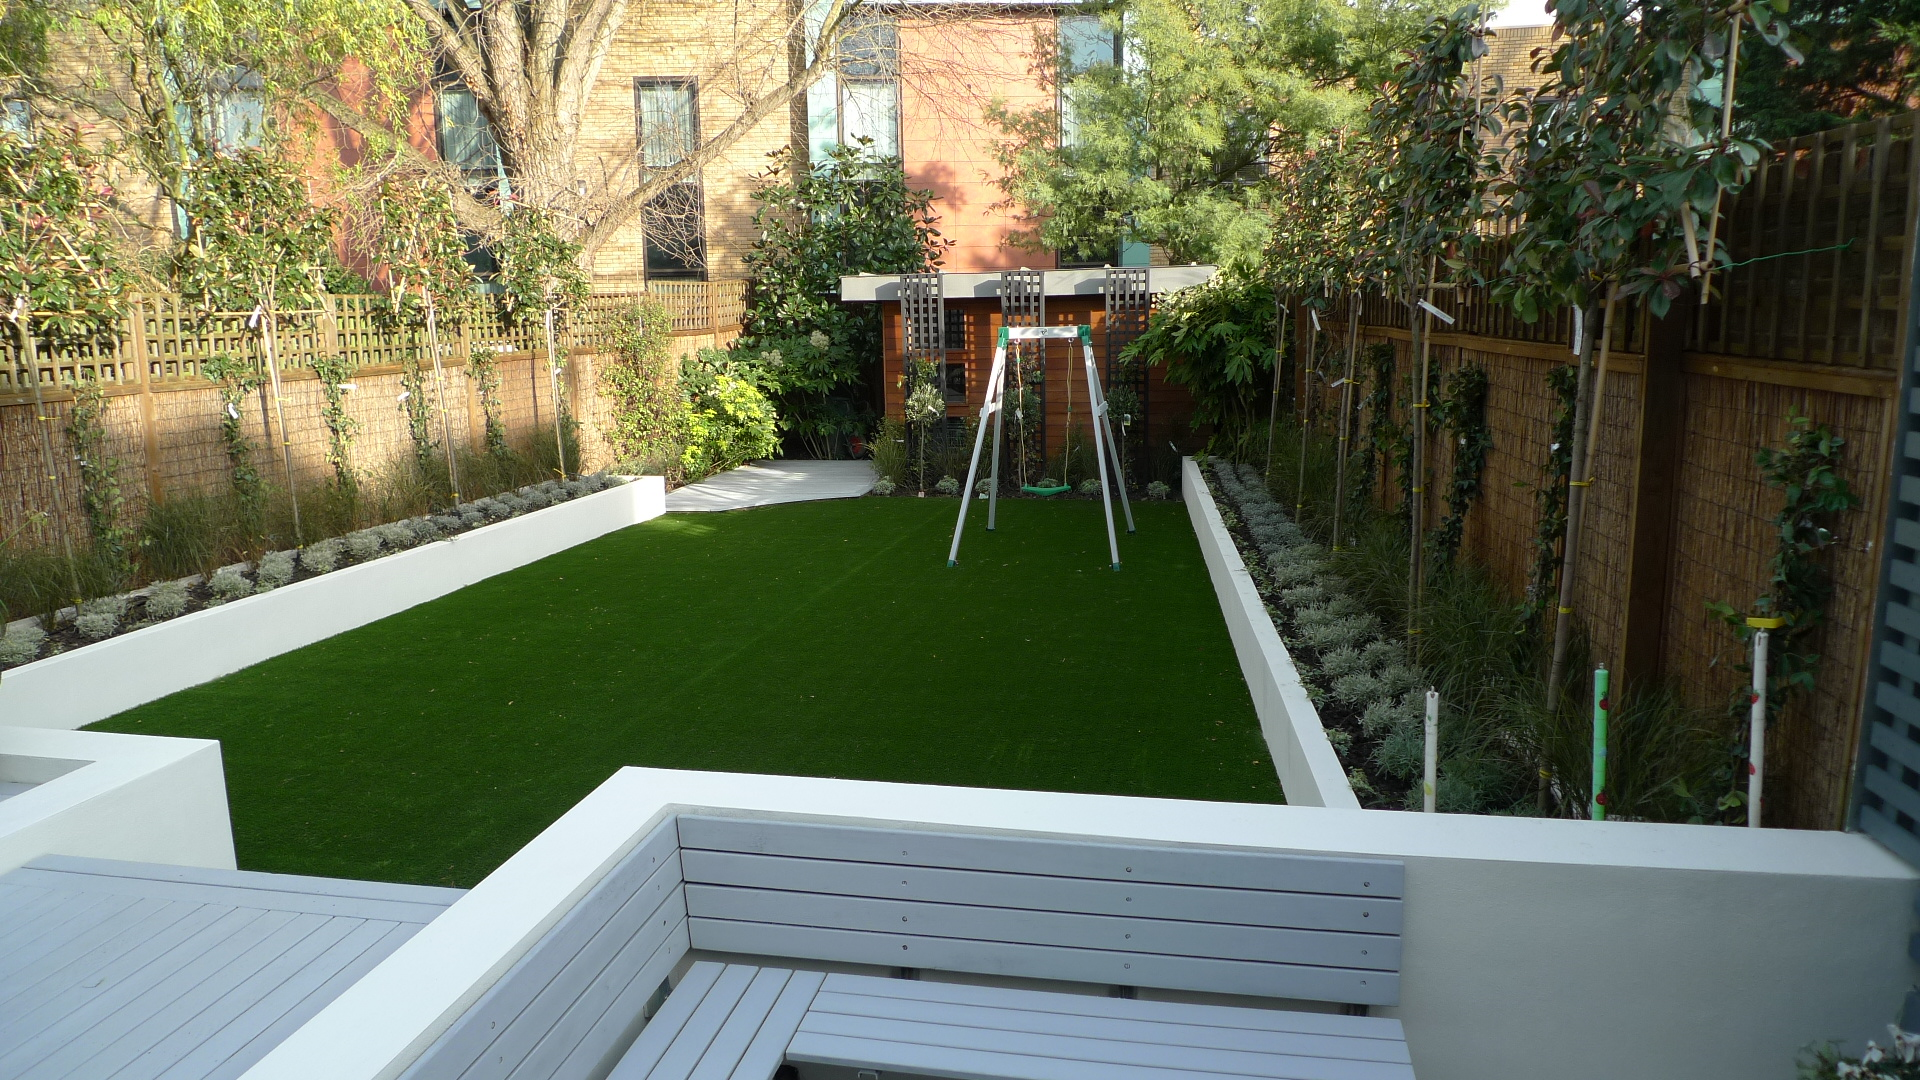 Modern garden design ideas london london garden design for Garden design pictures